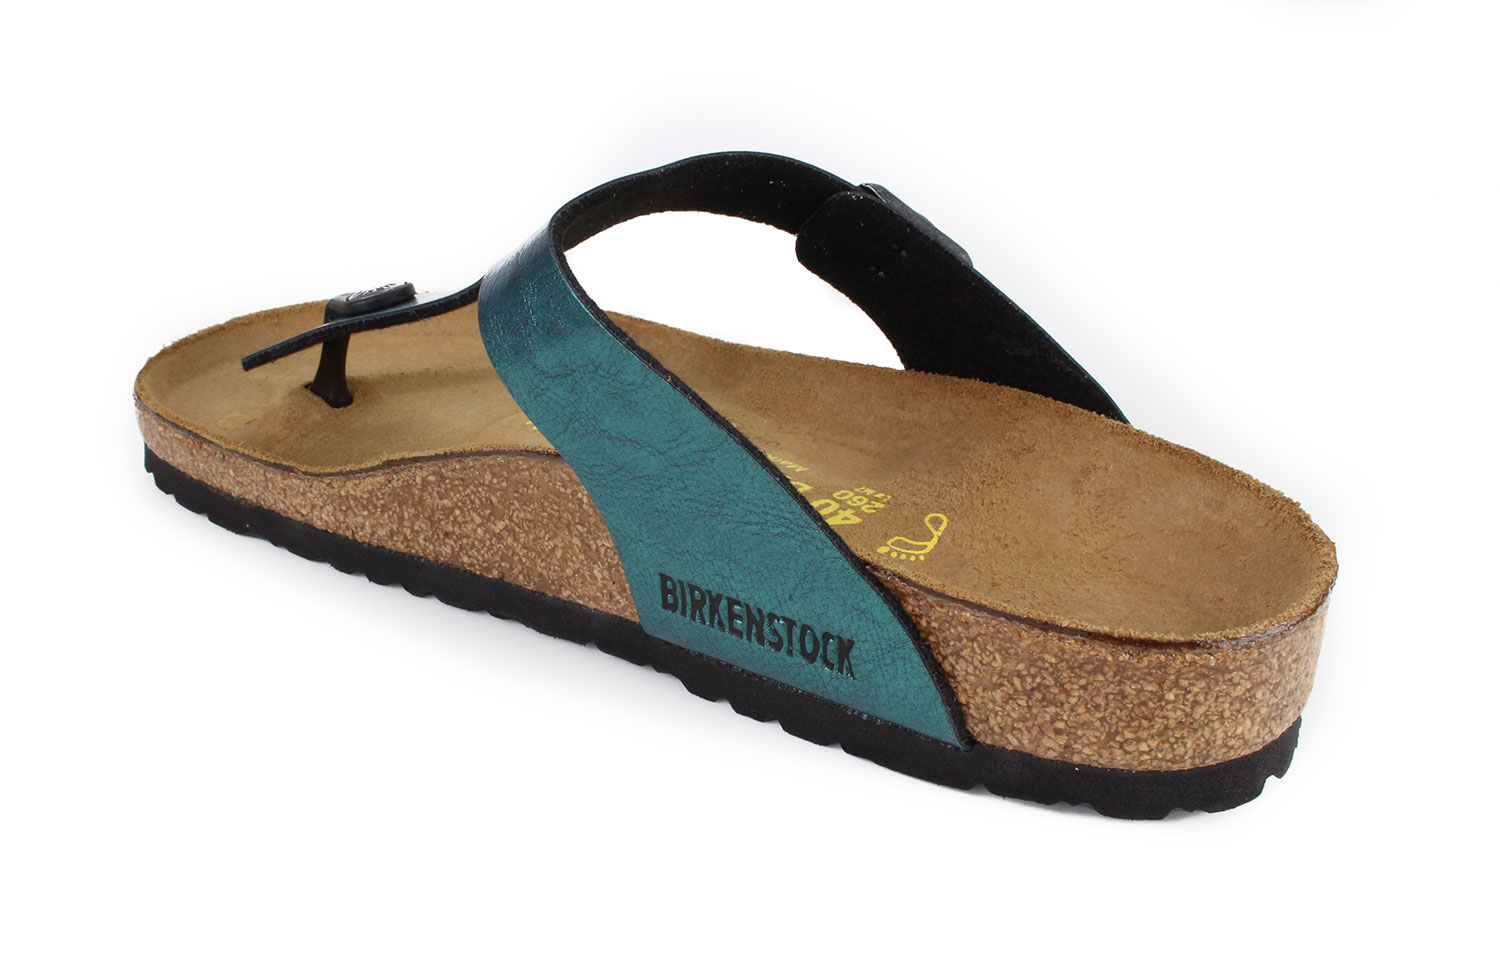 Birkenstock-Gizeh-Birko-Flor-Womens-Shoes-Slides-Sandals-anatomical-footbed-NEW thumbnail 20